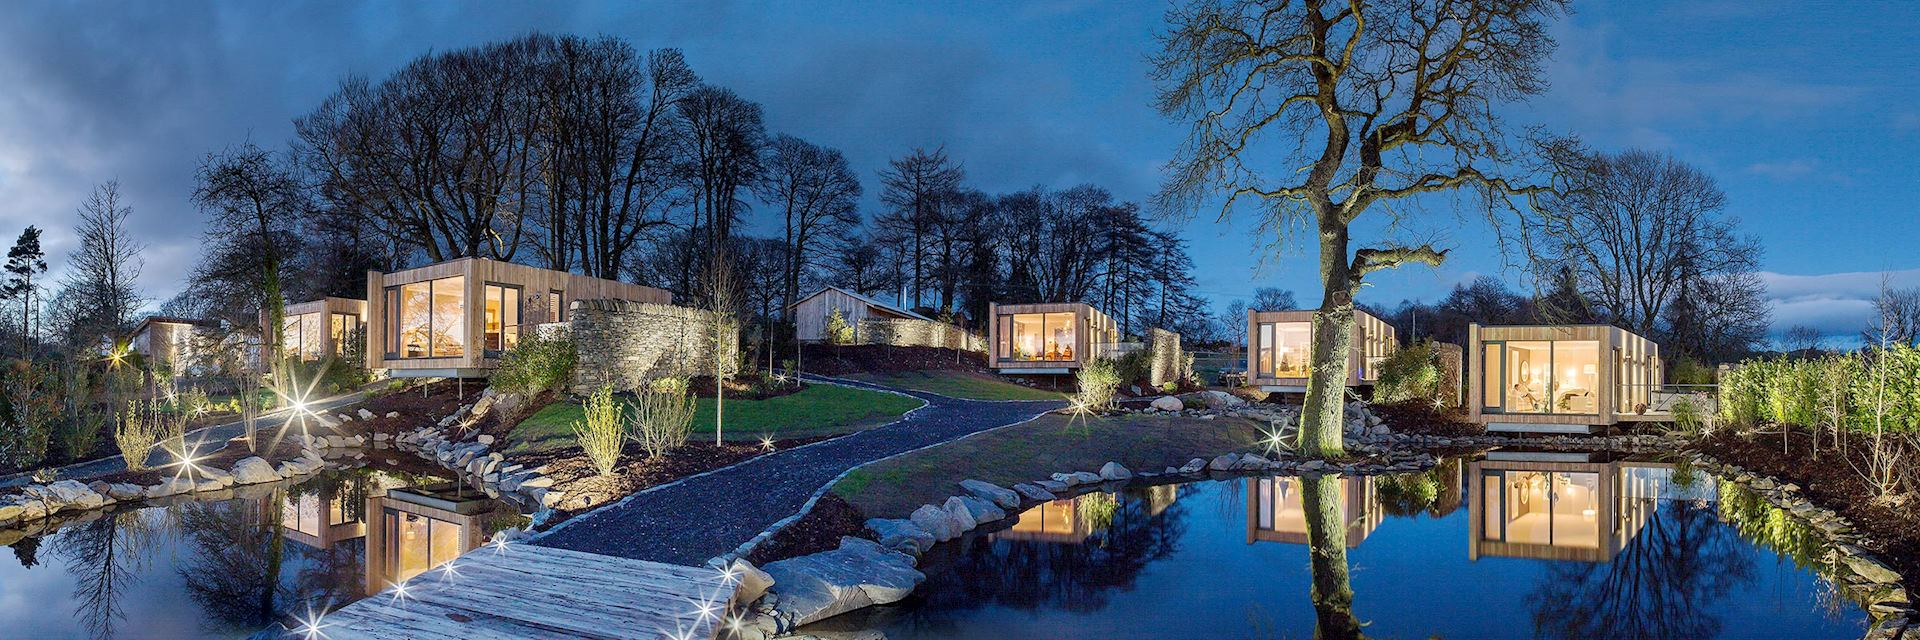 Gilpin Hotel & Lakehouse, The Lake District